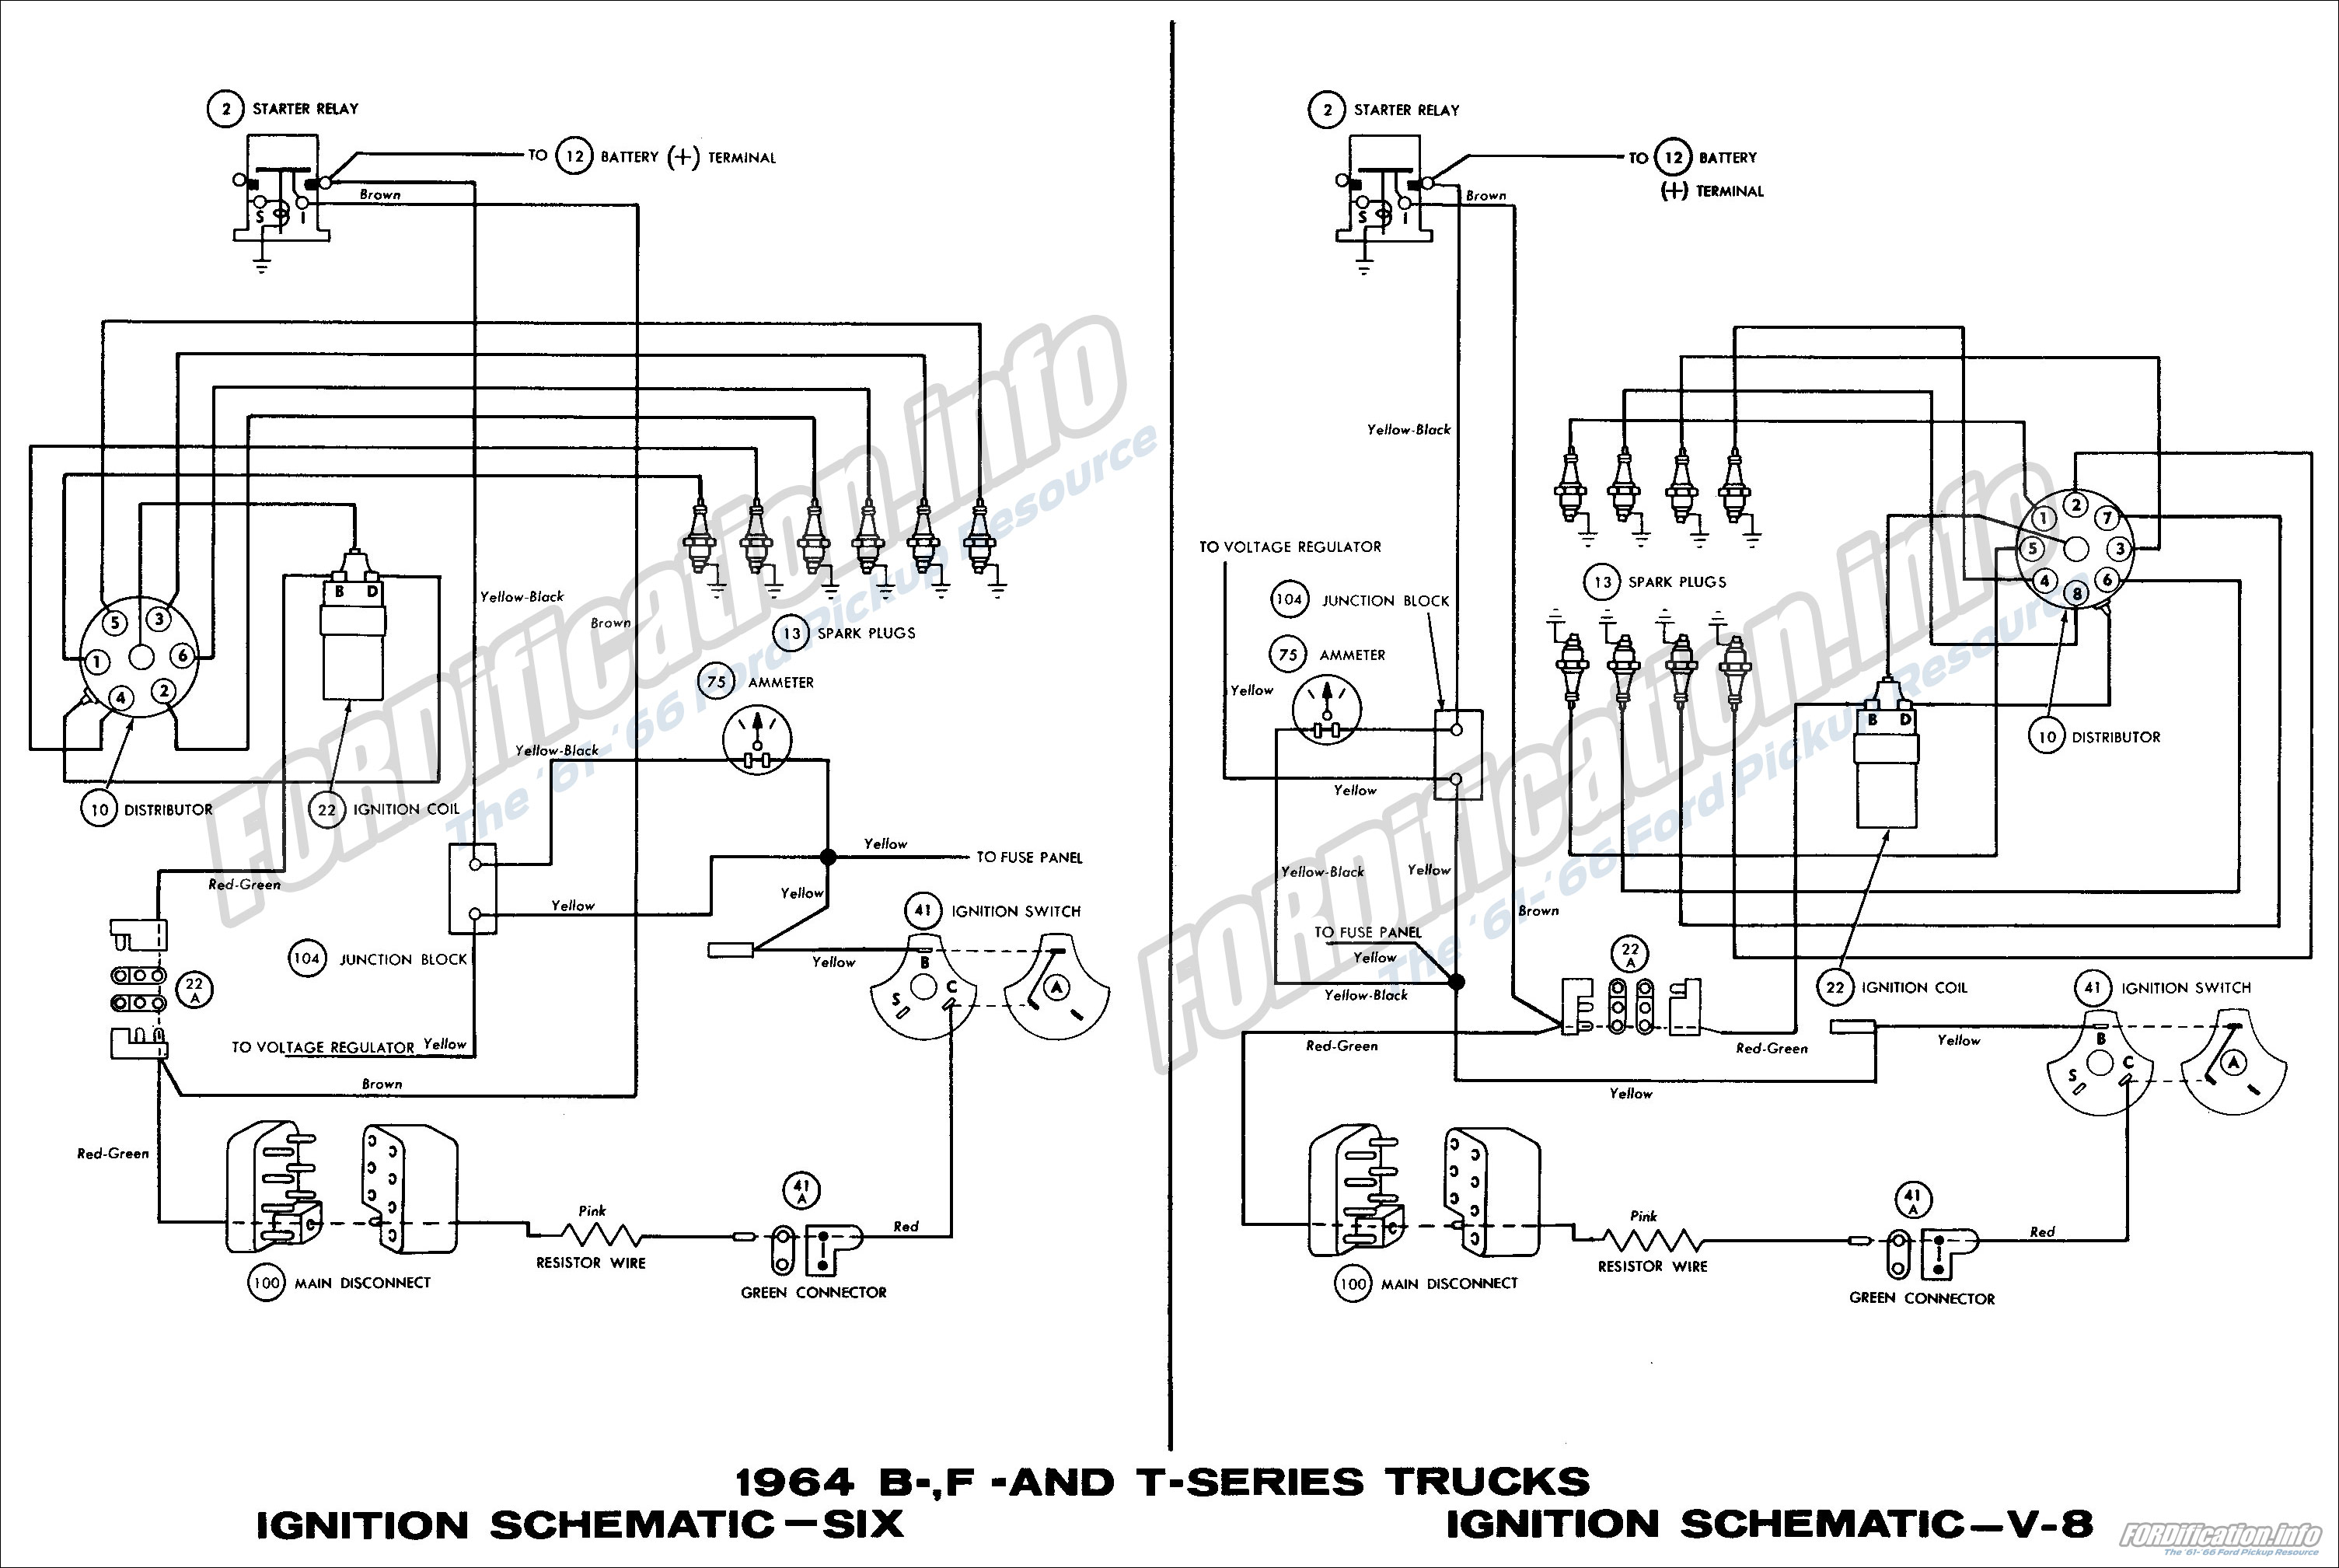 Transistorized Ignition Wiring Diagrams Of 1964 Ford B F And T Circuits Gt Tv Signal Amplifier Circuit With Bfr90 Transistor L37522 Truck Fordification Info The 61 66 Rh